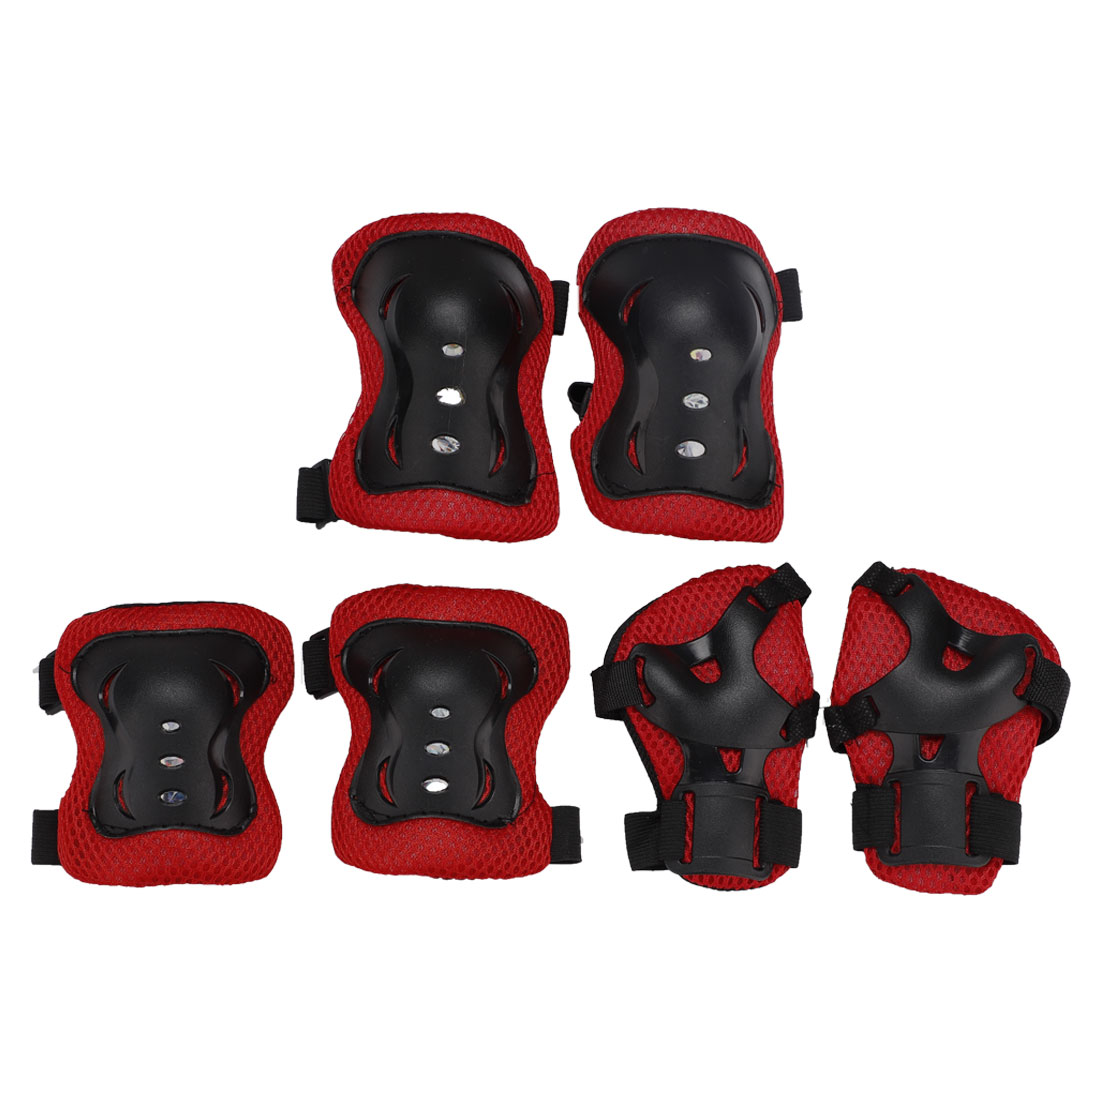 Kids Skating Palm Elbow Knee Support Shield Protector Cover Set Red 6 in 1